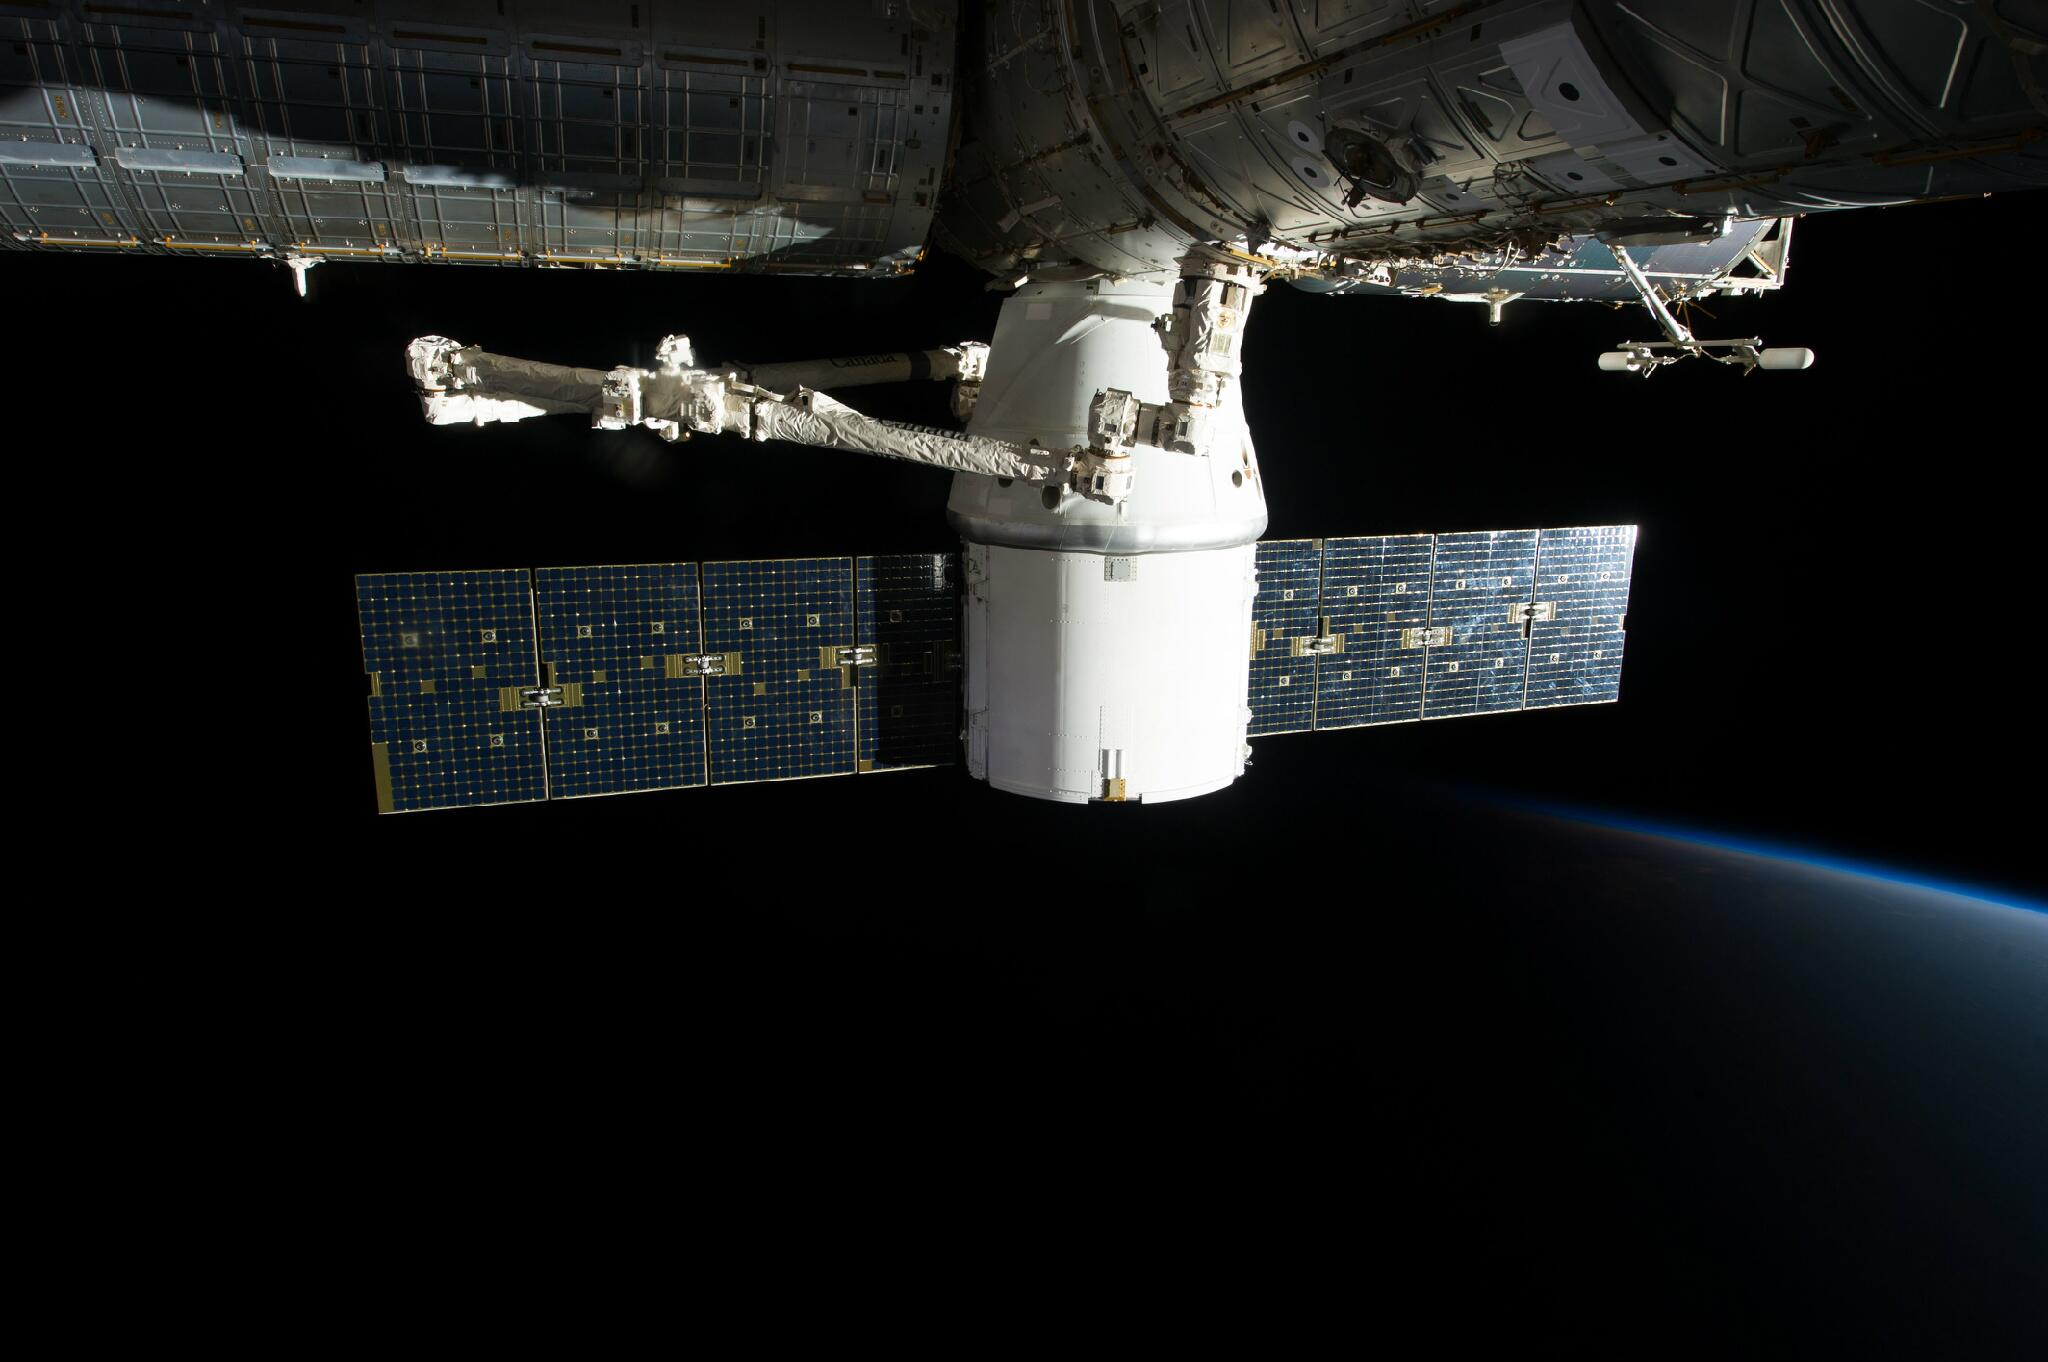 Twitter / elonmusk: Love this image of Dragon docked ...